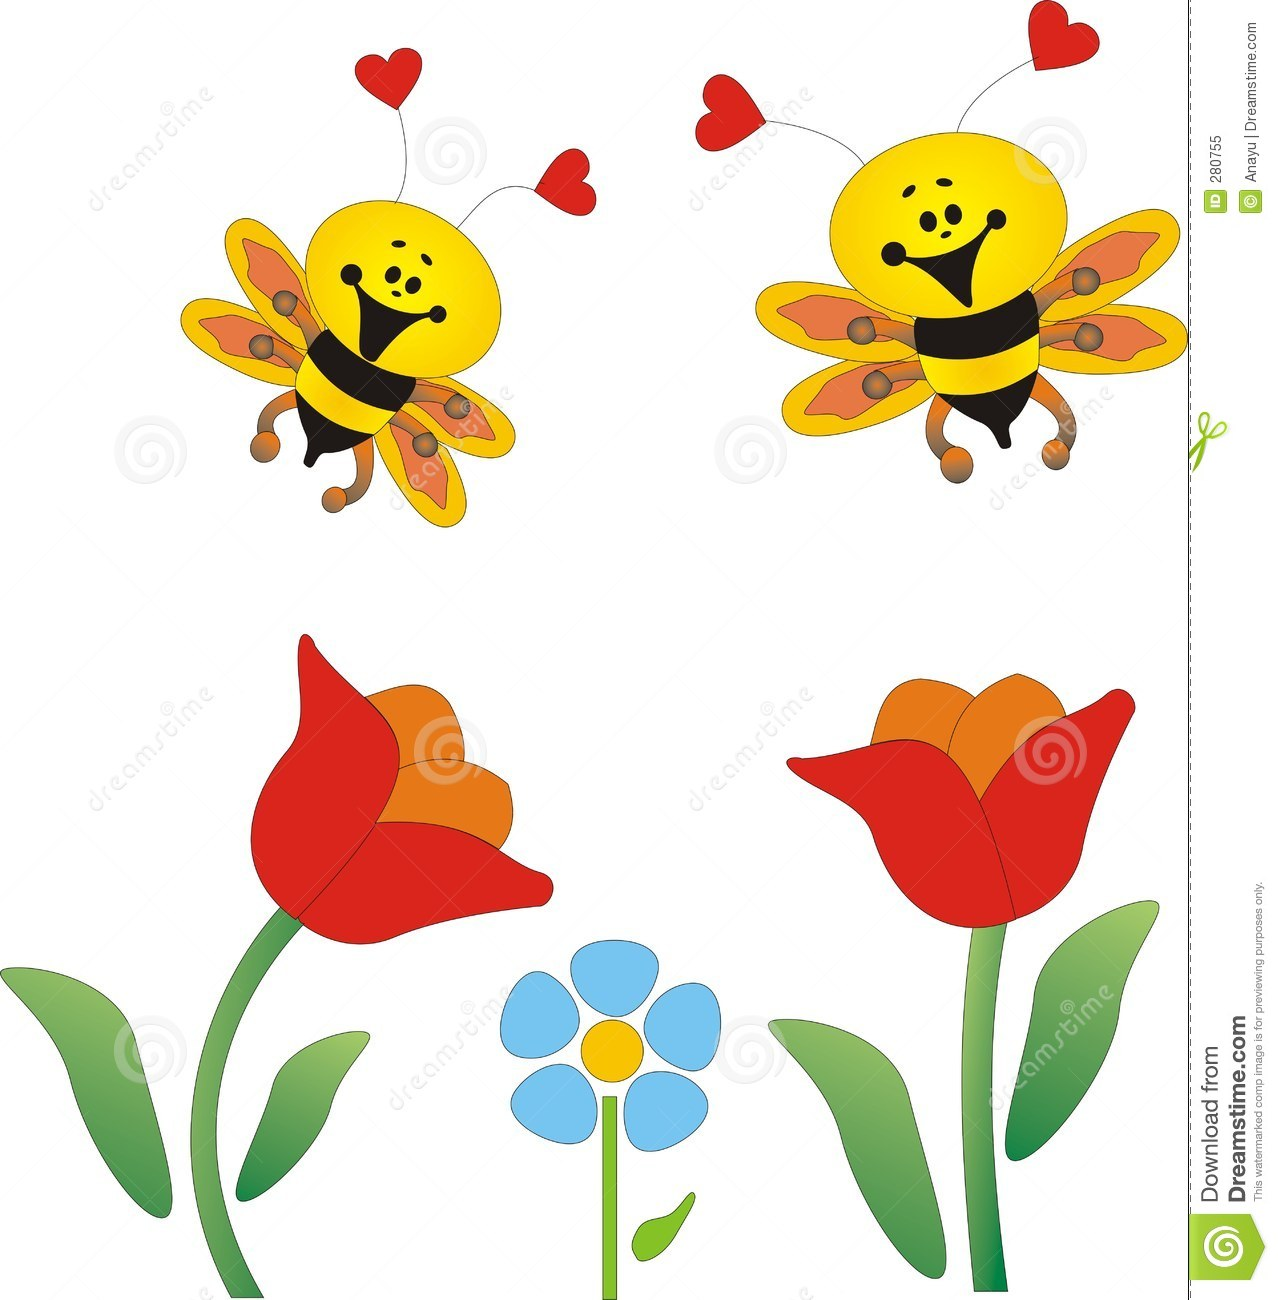 Bees and flowers clipart picture transparent stock Flowers and bees clipart - ClipartFest picture transparent stock